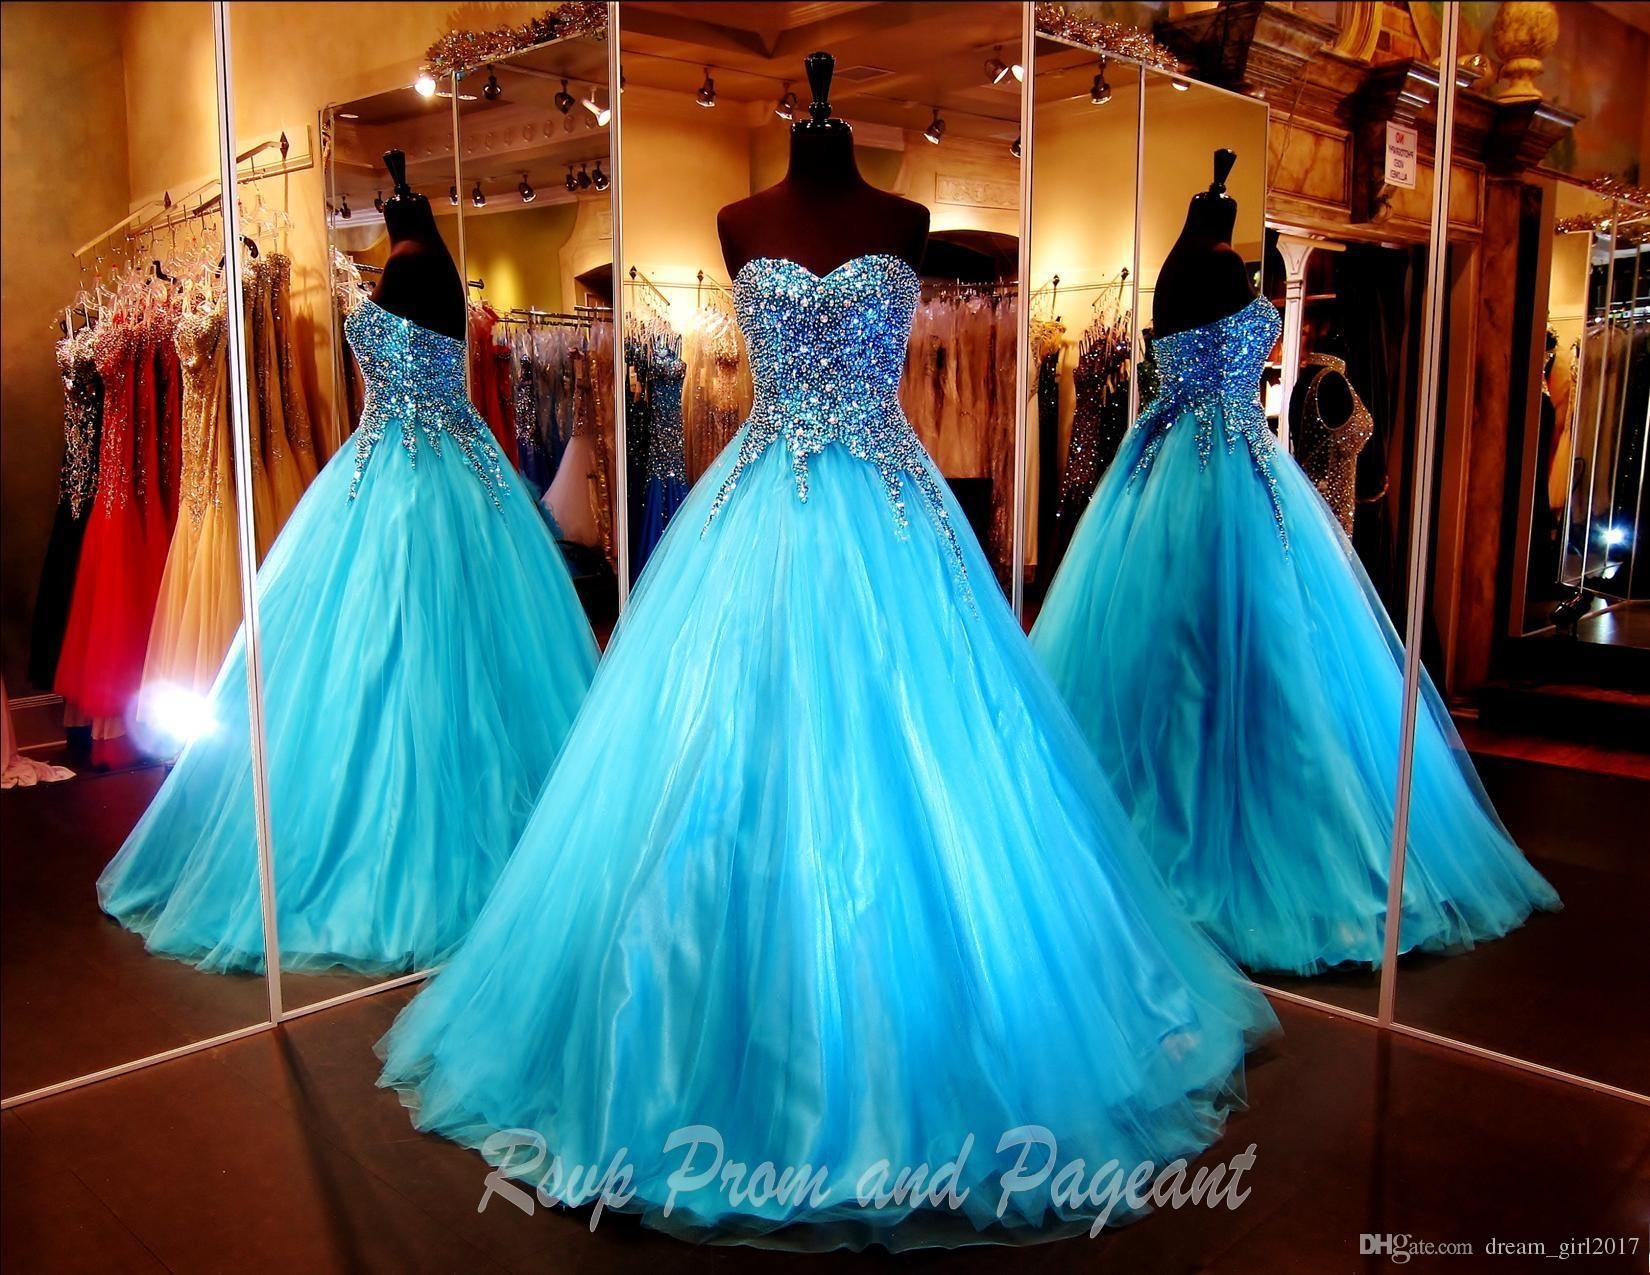 5430cb2f617 Turquoise Ball Gown Prom Dresses 2017 Sweetheart Strapless Multi Colored  Stones Beaded Tulle Quinceanera Dresses Formal Masquerade Gowns Shop Prom  Dress Xo ...